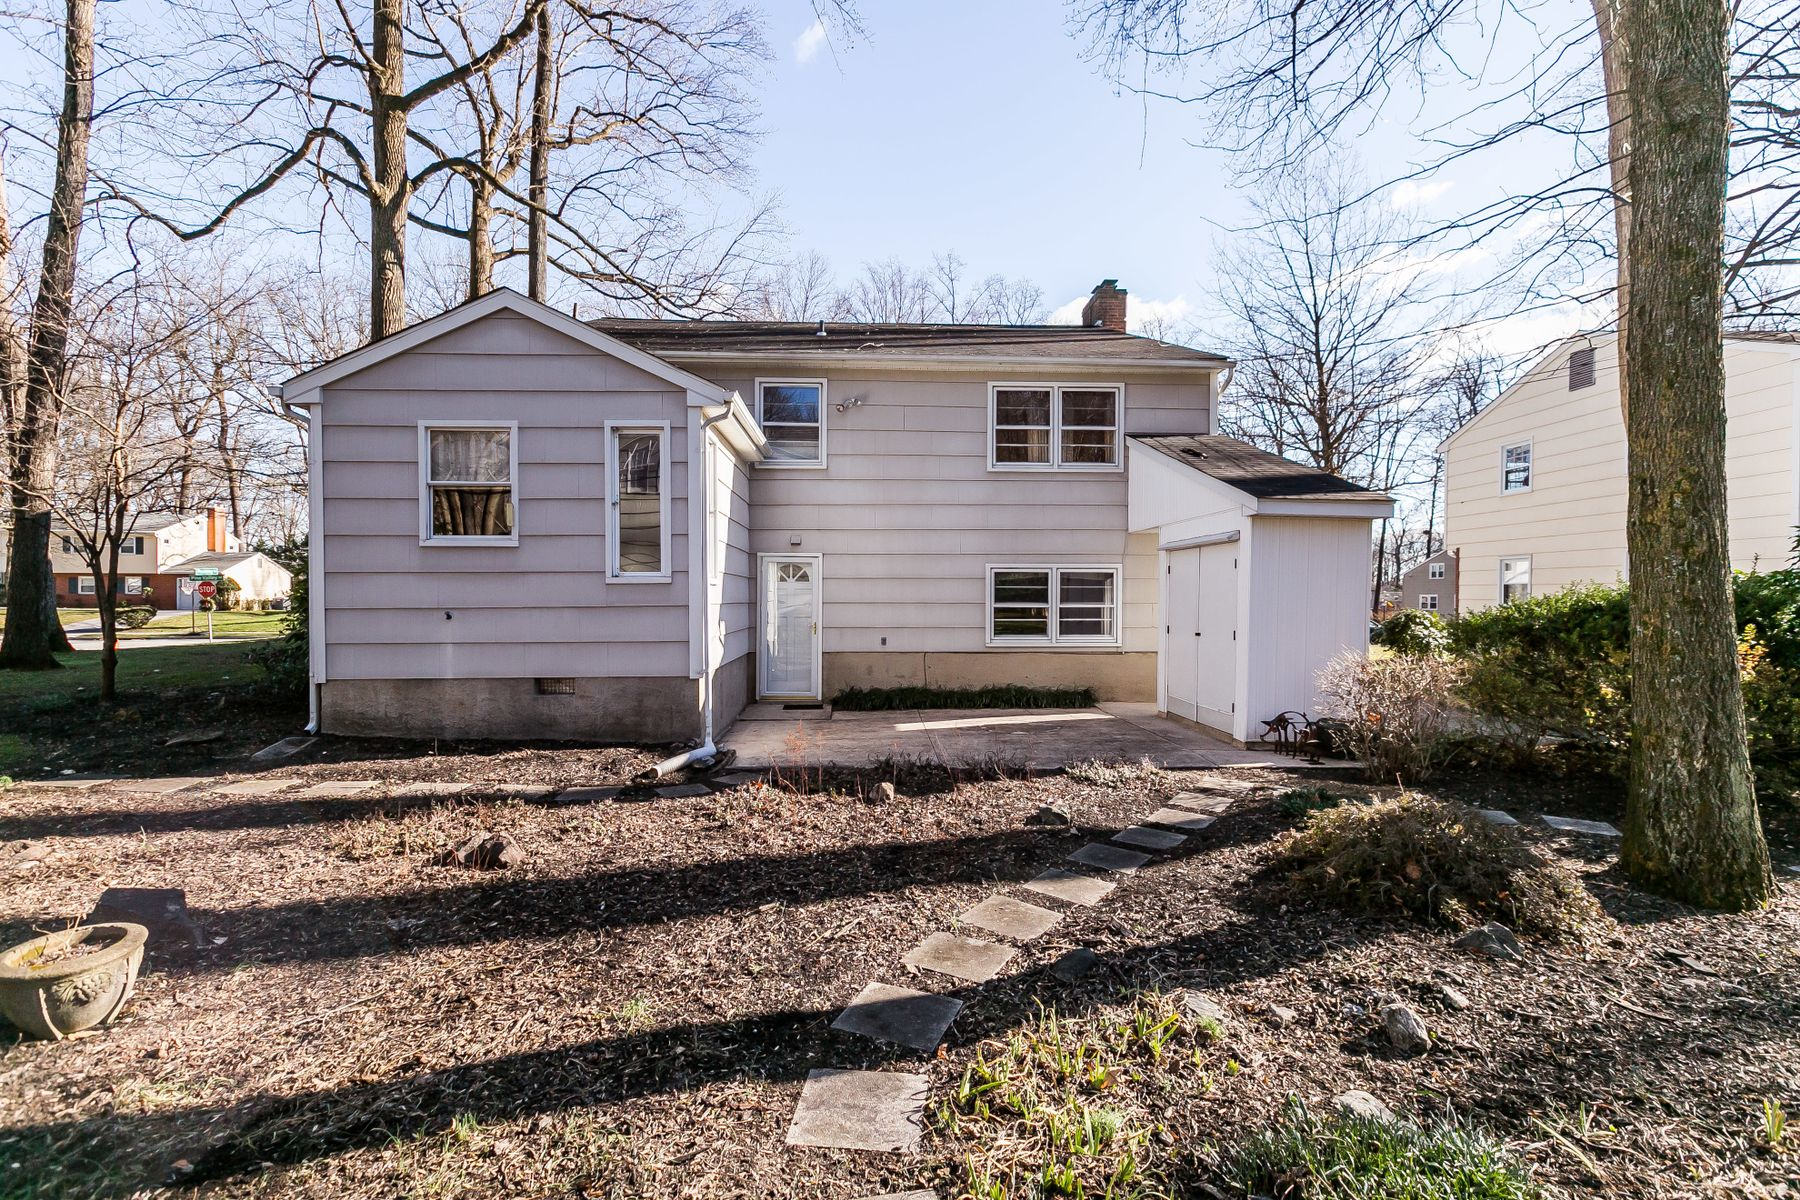 2204 Pine Valley Drive, Lutherville-Timonium, MD 21093 ...